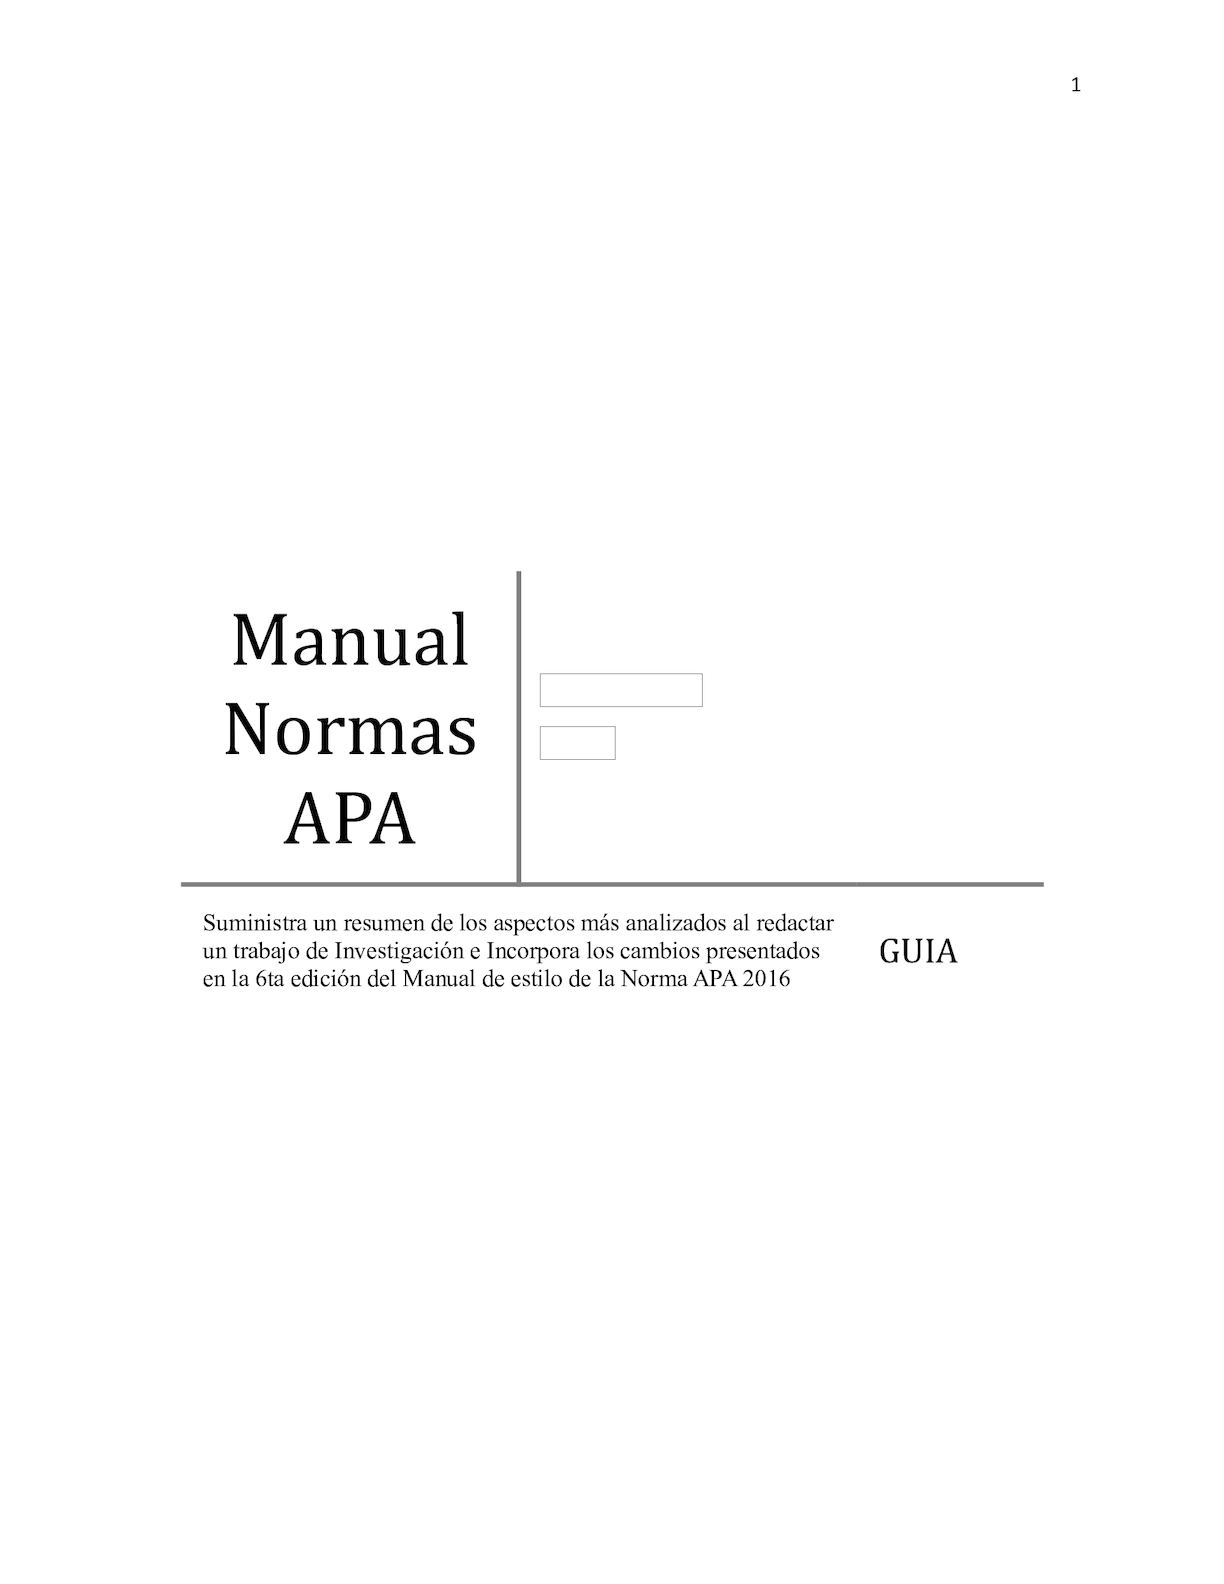 Calamo Manual Normas Apa 1